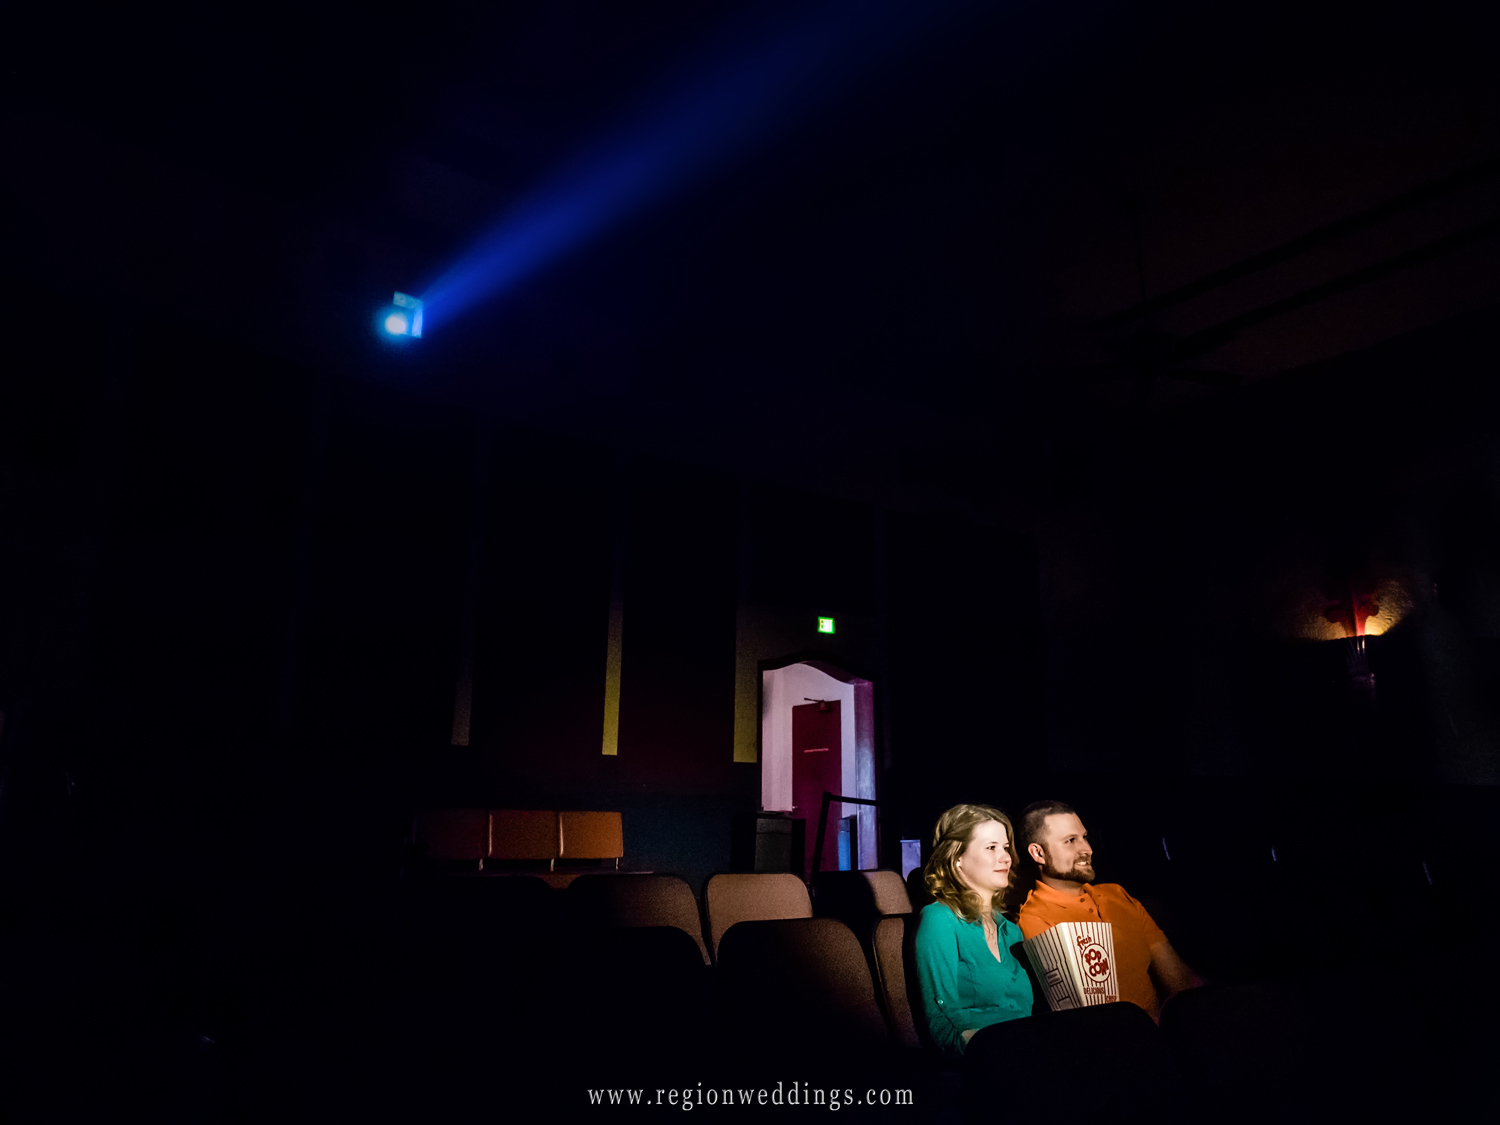 A couple watches a film at the Art Theater for their engagement photos.